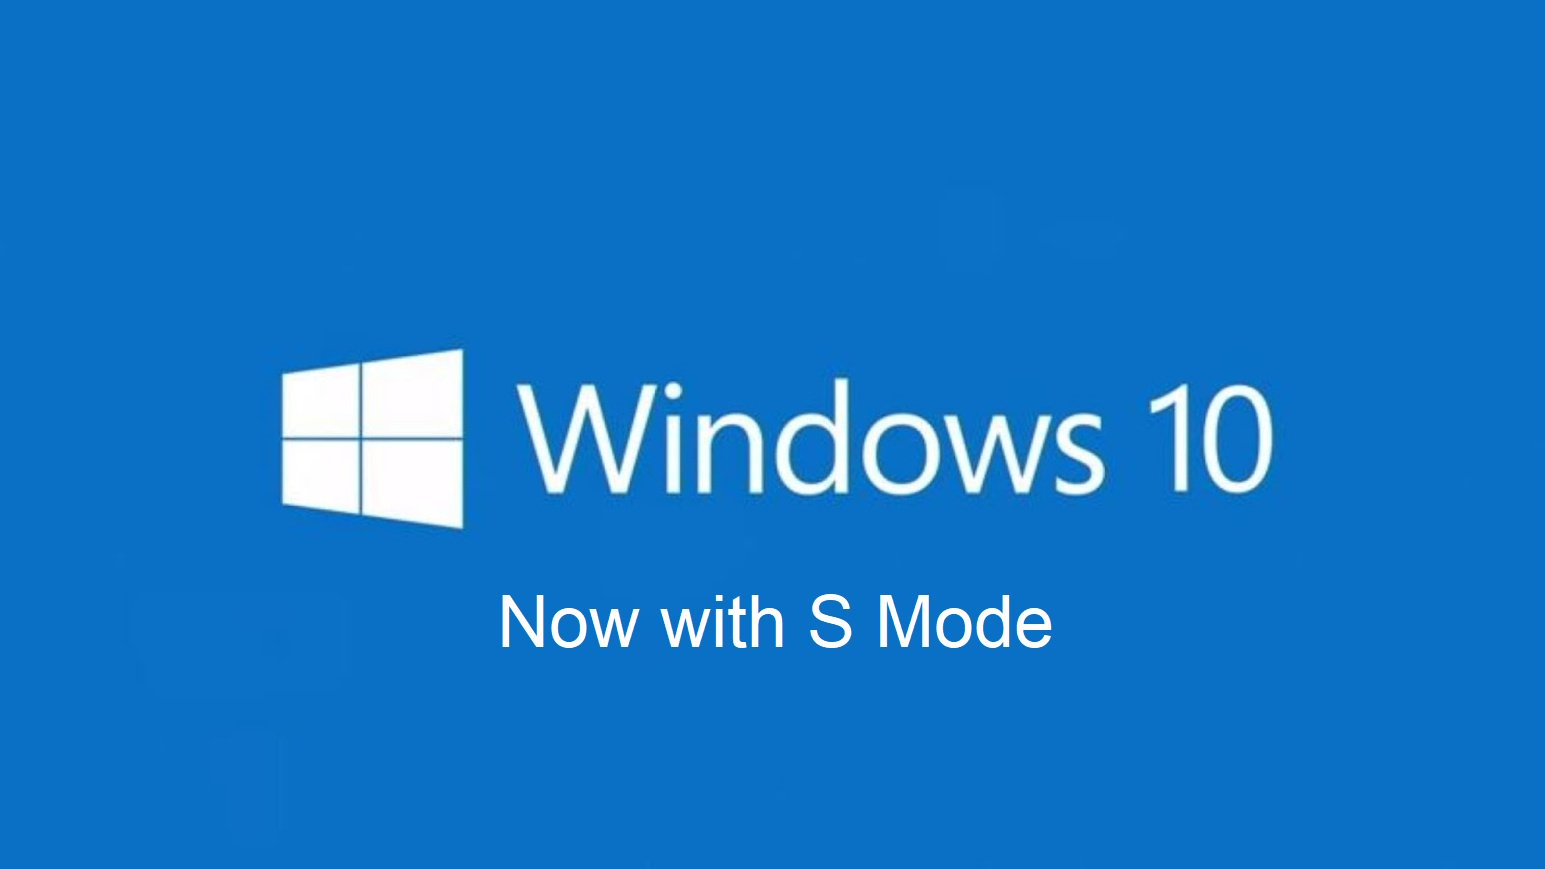 Addio Windows 10 S, benvenuto Windows 10 S Mode